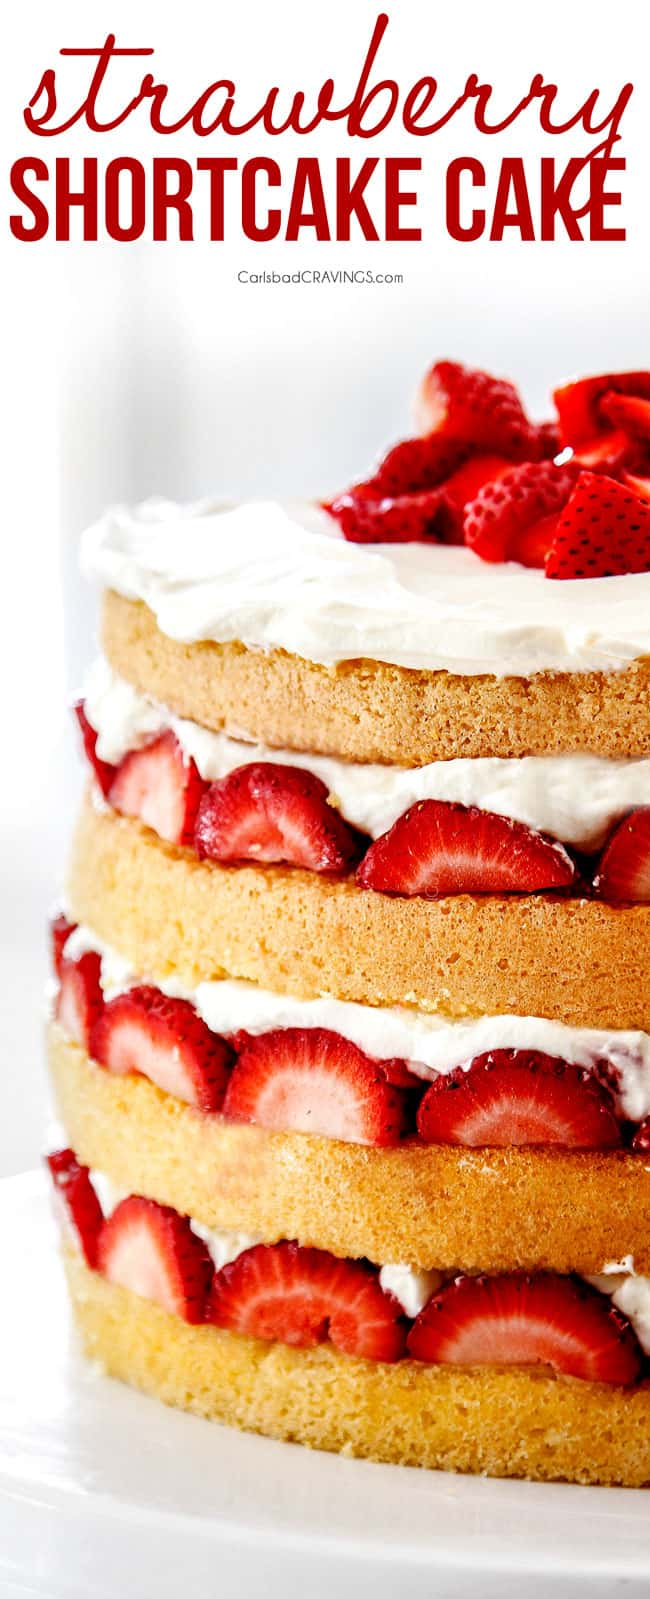 up close of strawberry shortcake cake with layers of sponge cake, strawberries and whipped cream